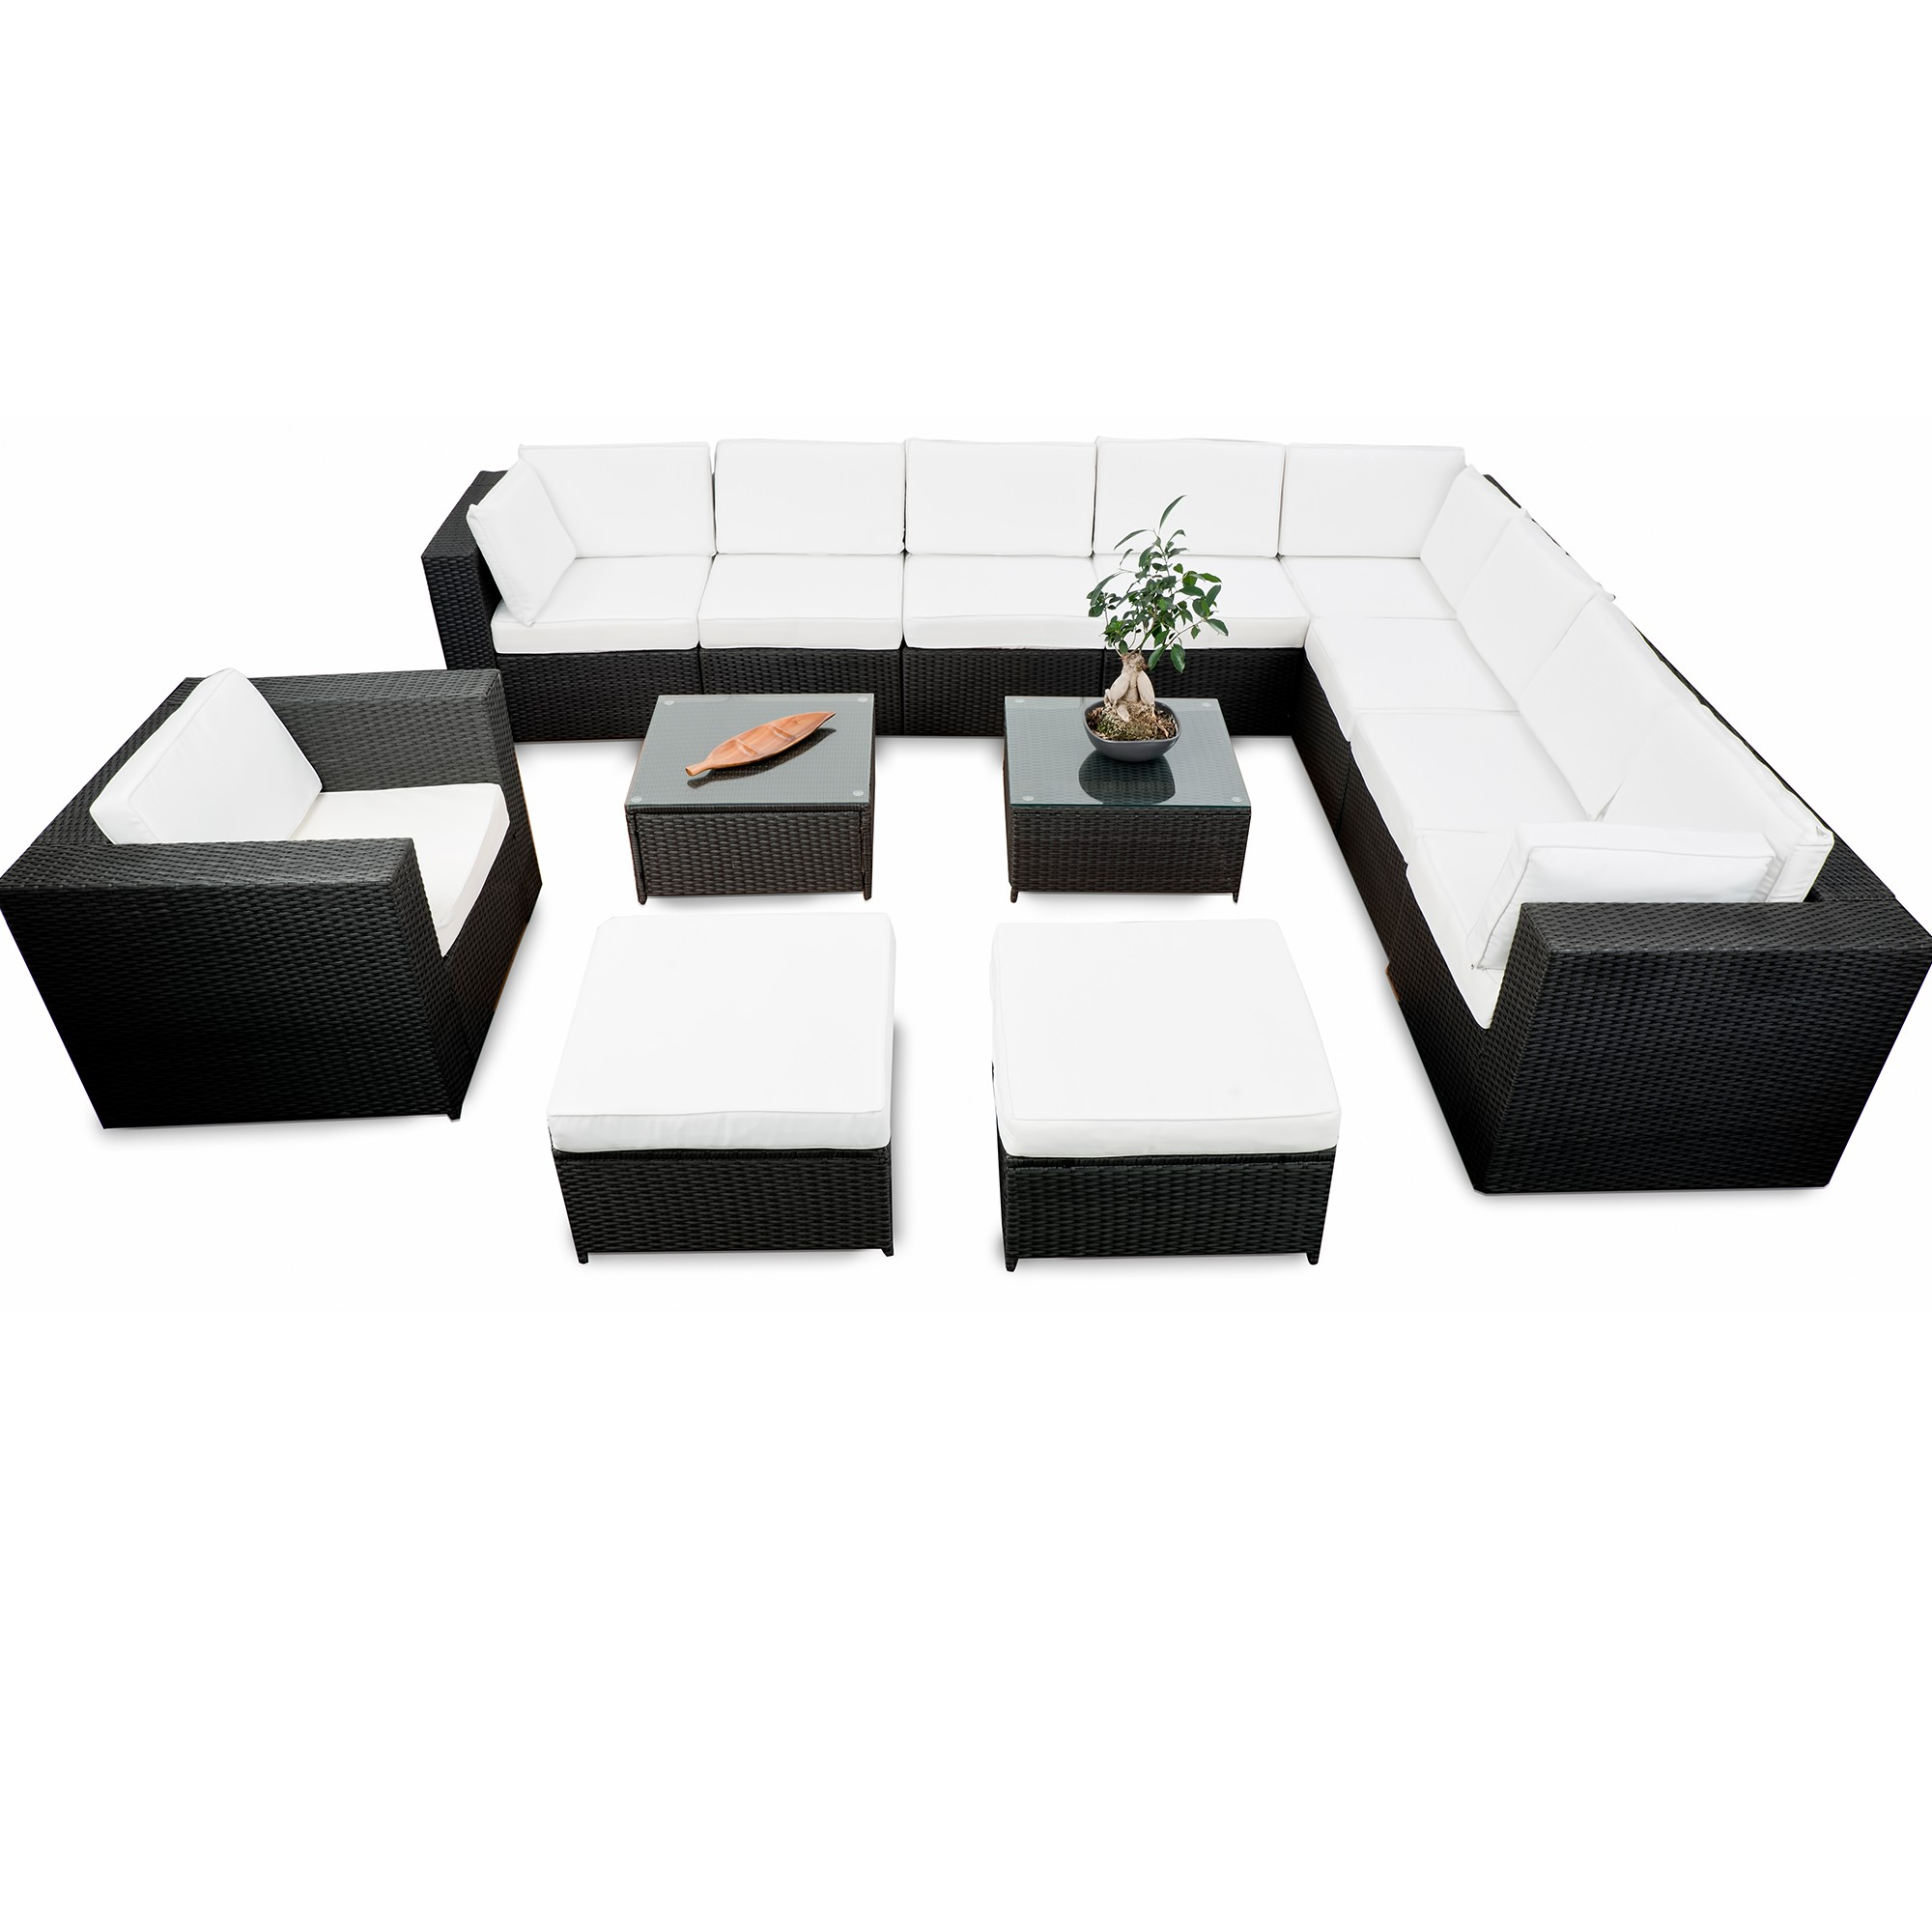 gartenmoebel rattan lounge g nstig rattan lounge gartenm bel kaufen. Black Bedroom Furniture Sets. Home Design Ideas